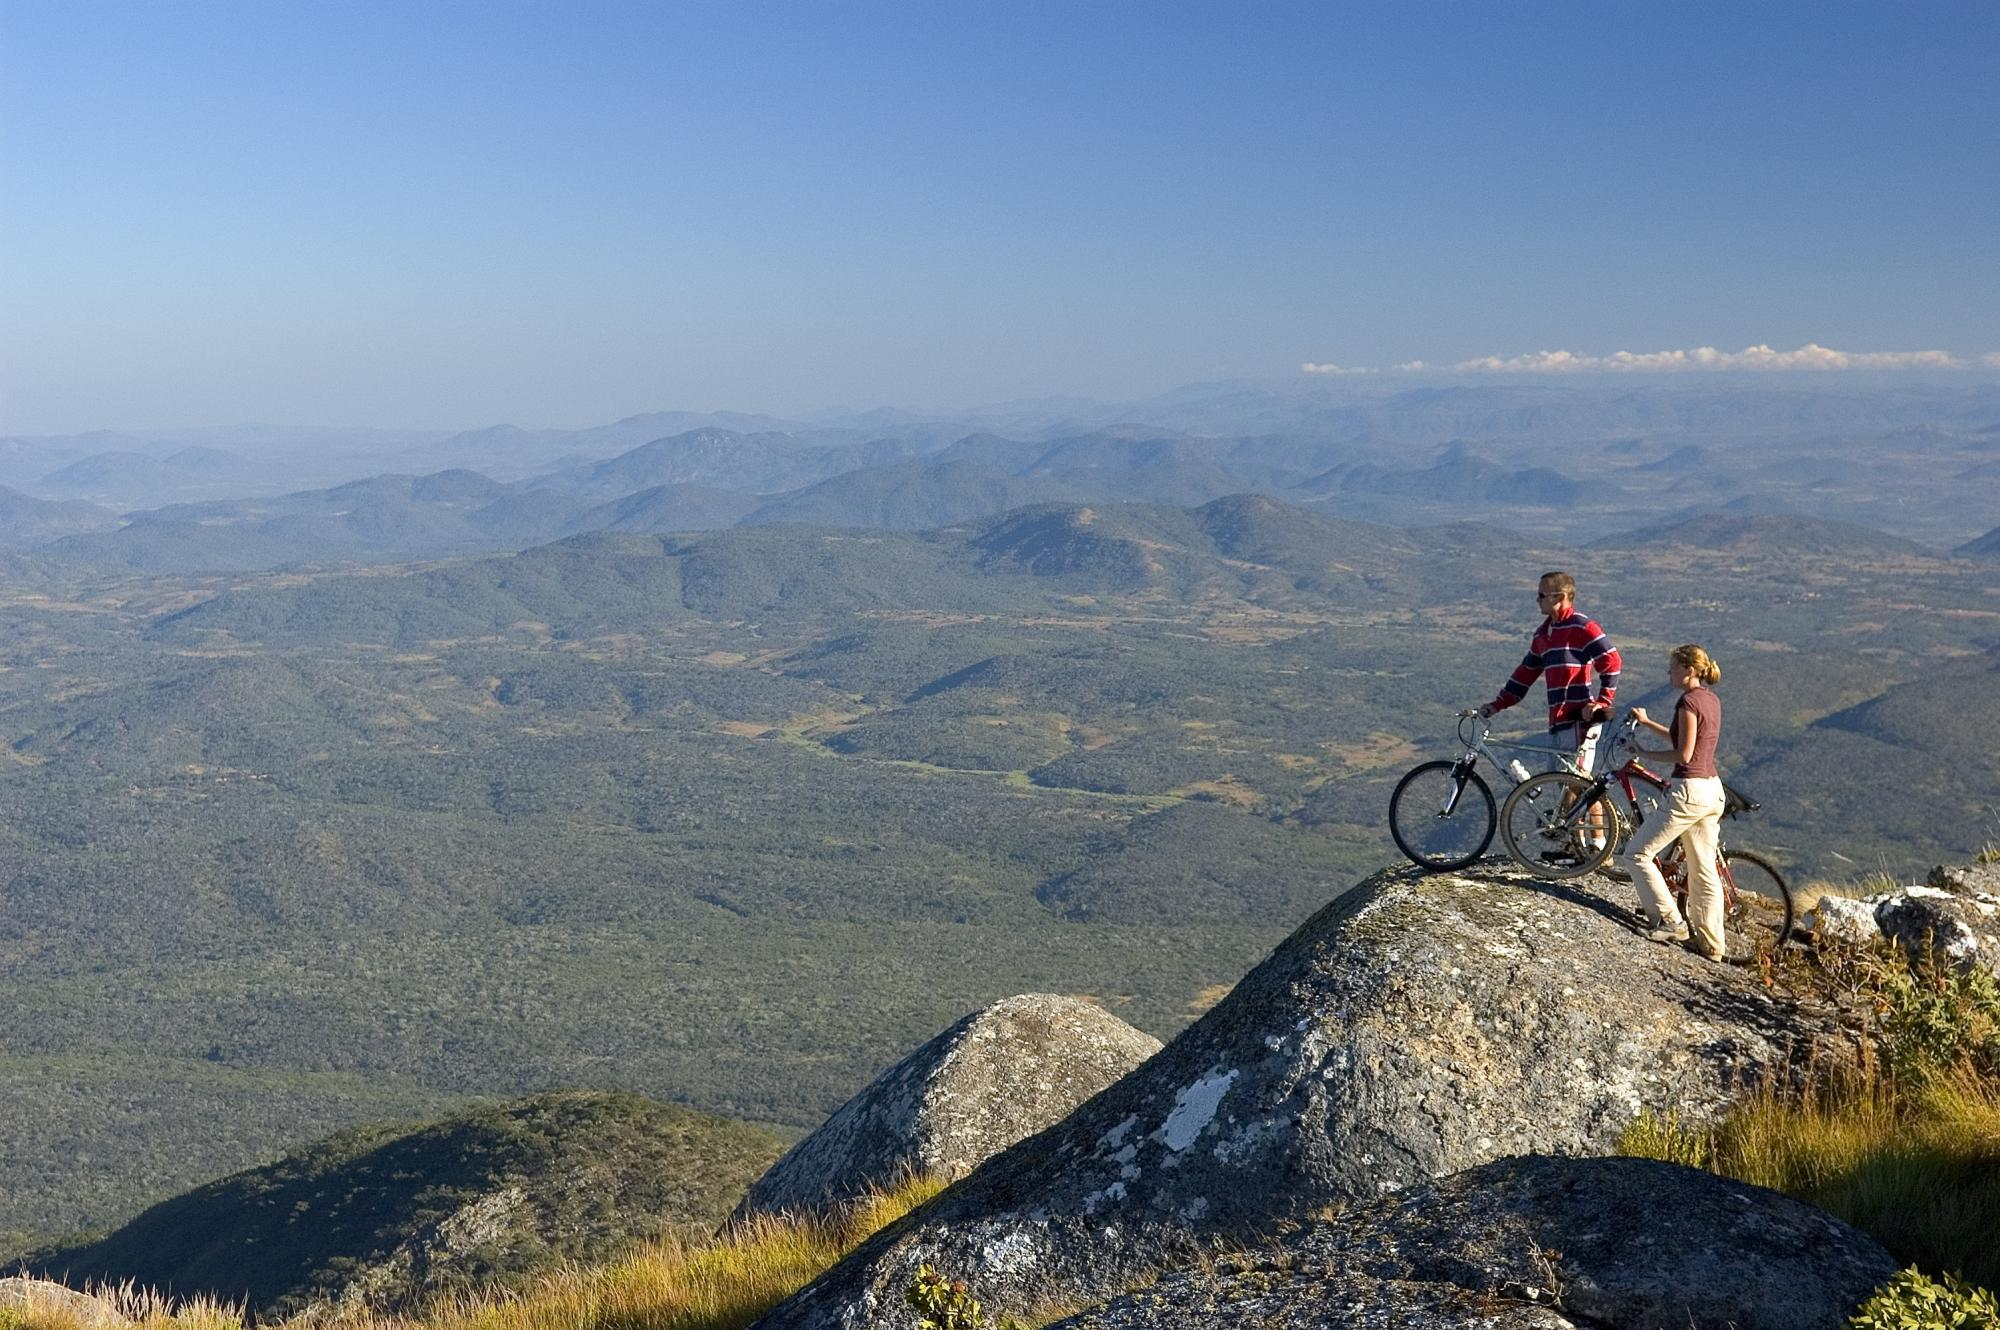 chelinda_lodge_nyika_plateau_malawi__cycling_dana_allen_wilderness_safaris